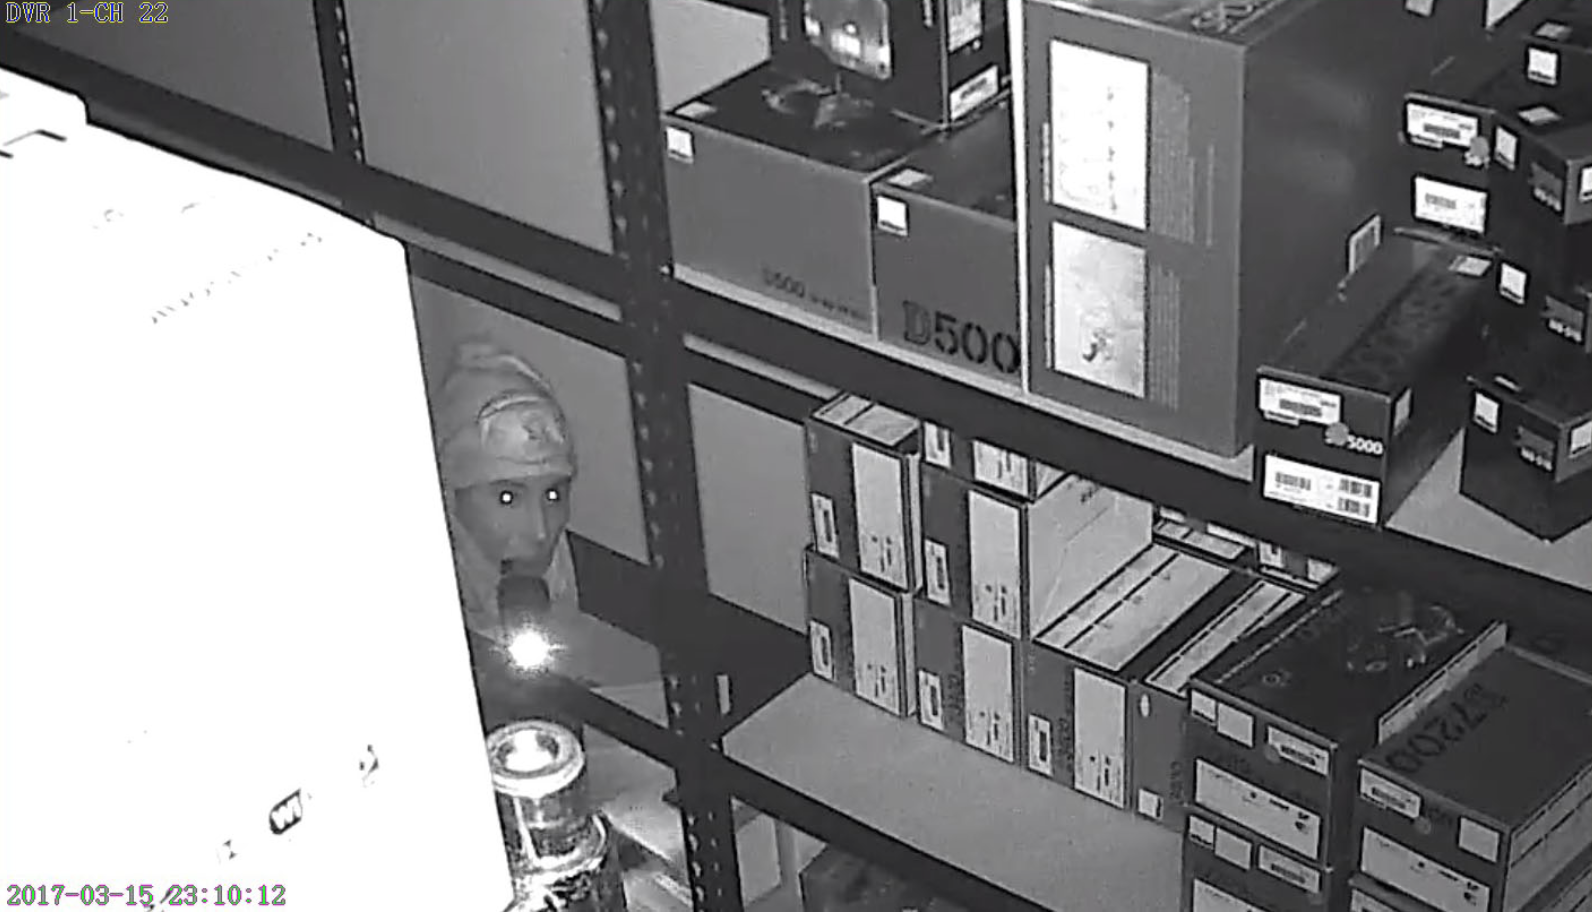 Surveillance frames from Midwest Photo